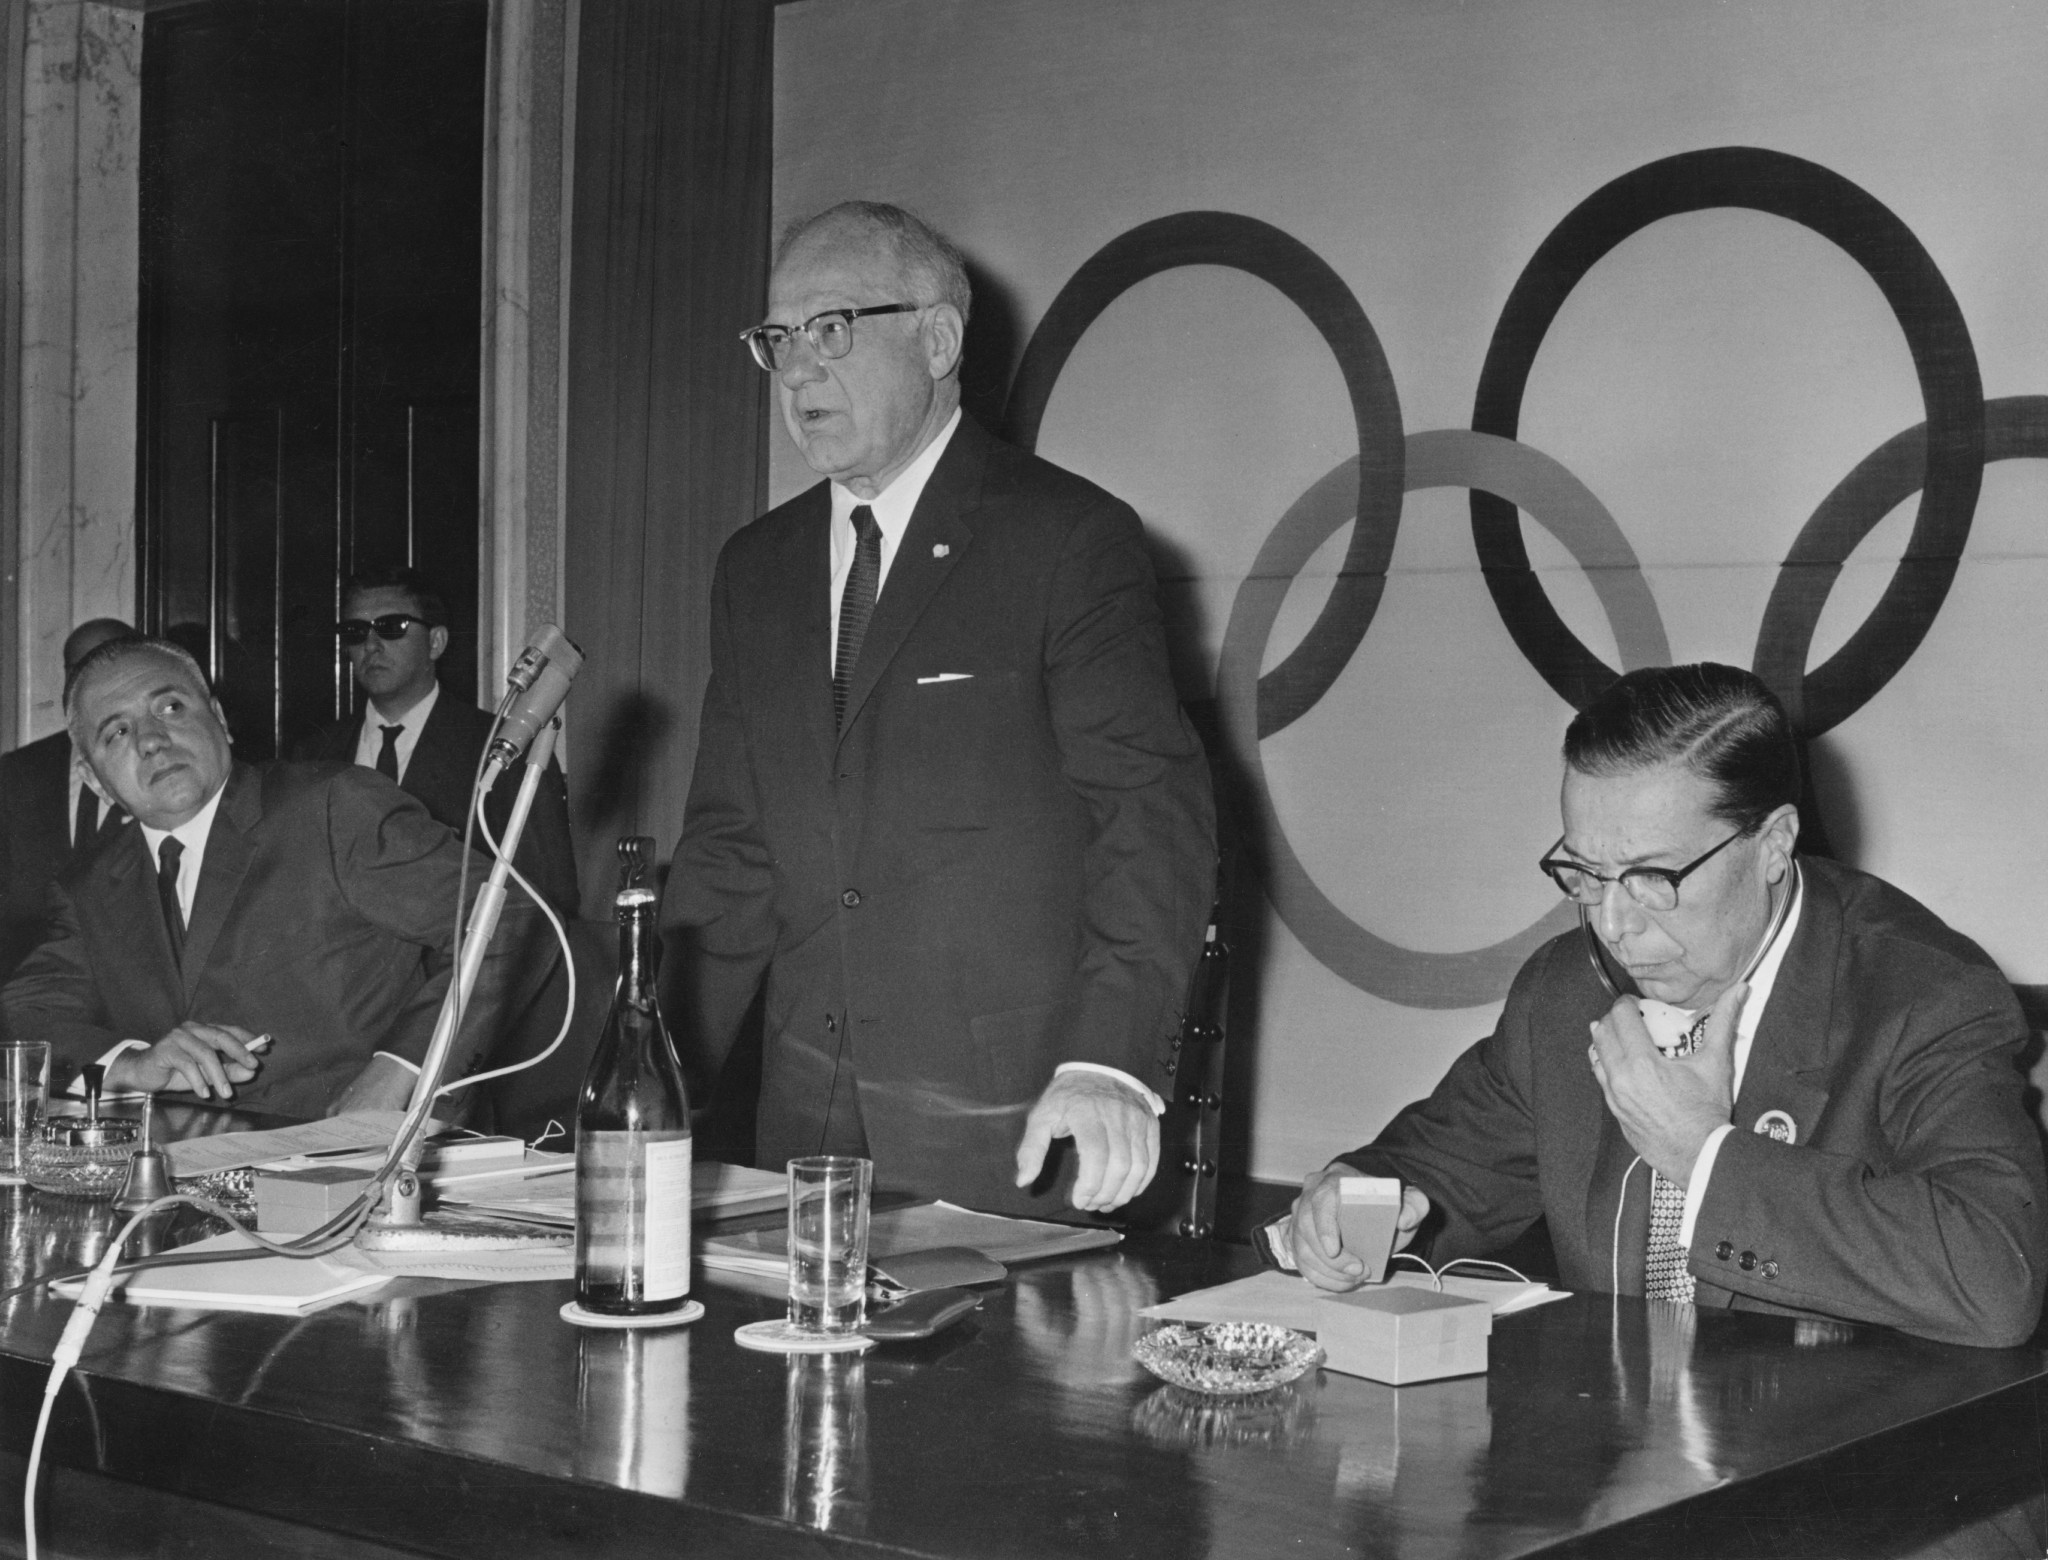 Avery Brundage (standing) was IOC President at the time that lifetime bans were issued to Matthews and Collett ©Getty Images